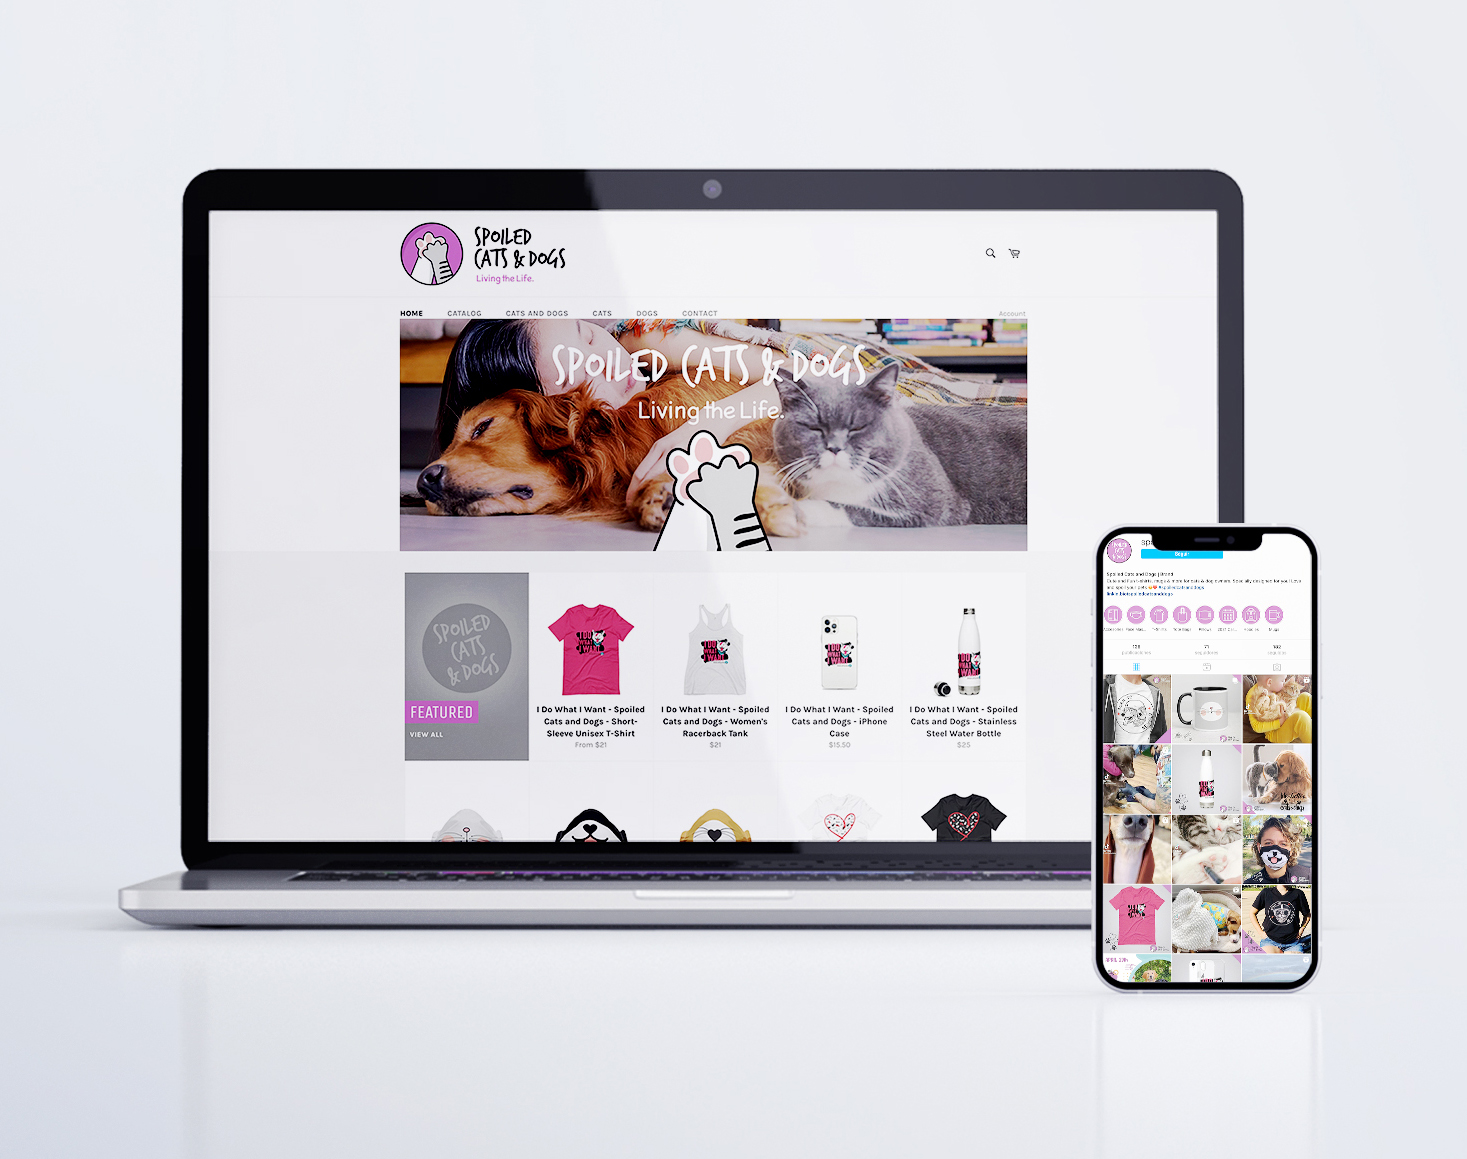 Projekt Group Branding - Spoiled Cats And Dogs - Web Design, E-commerce